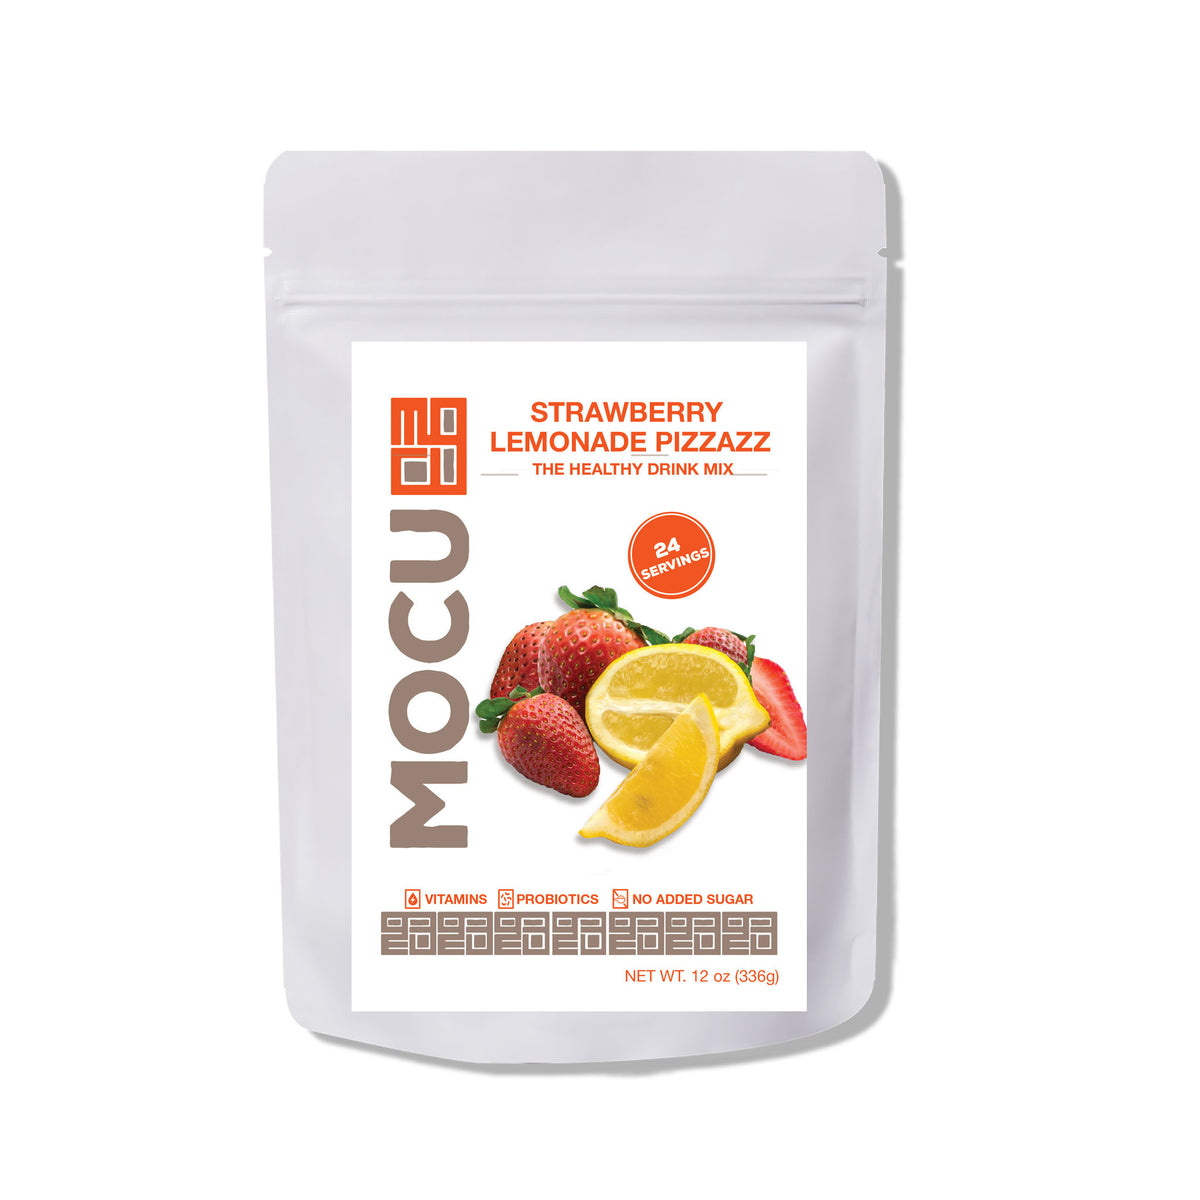 Strawberry Lemonade Probiotic & Whole Food Vitamin Drink Mix - The JfJ